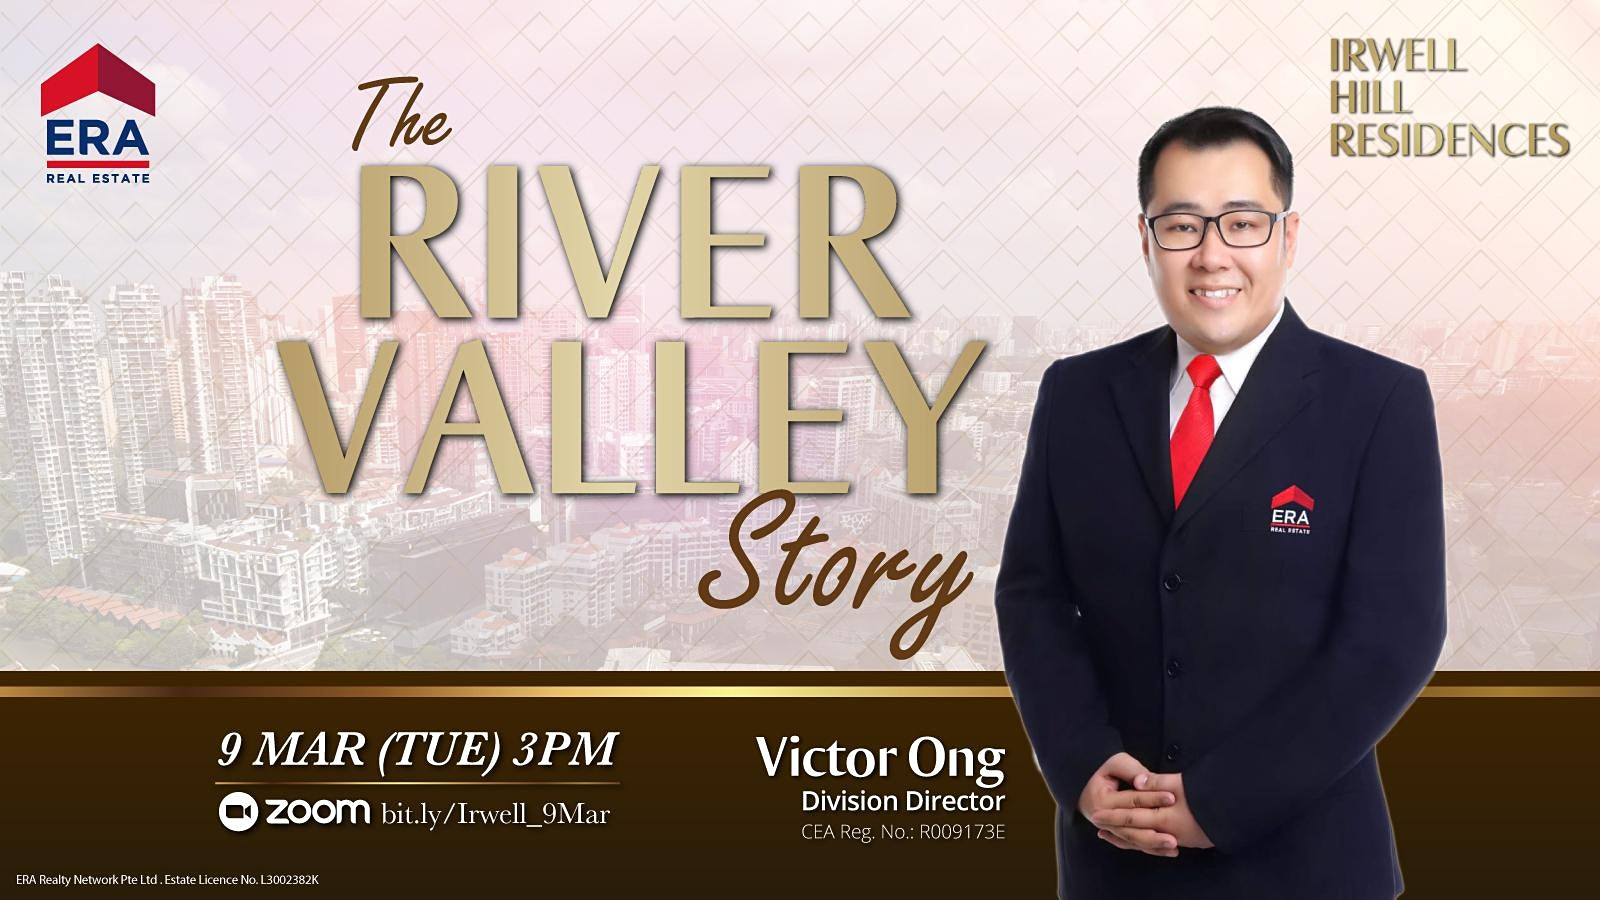 The River Valley Story (Irwell Hill Residences)